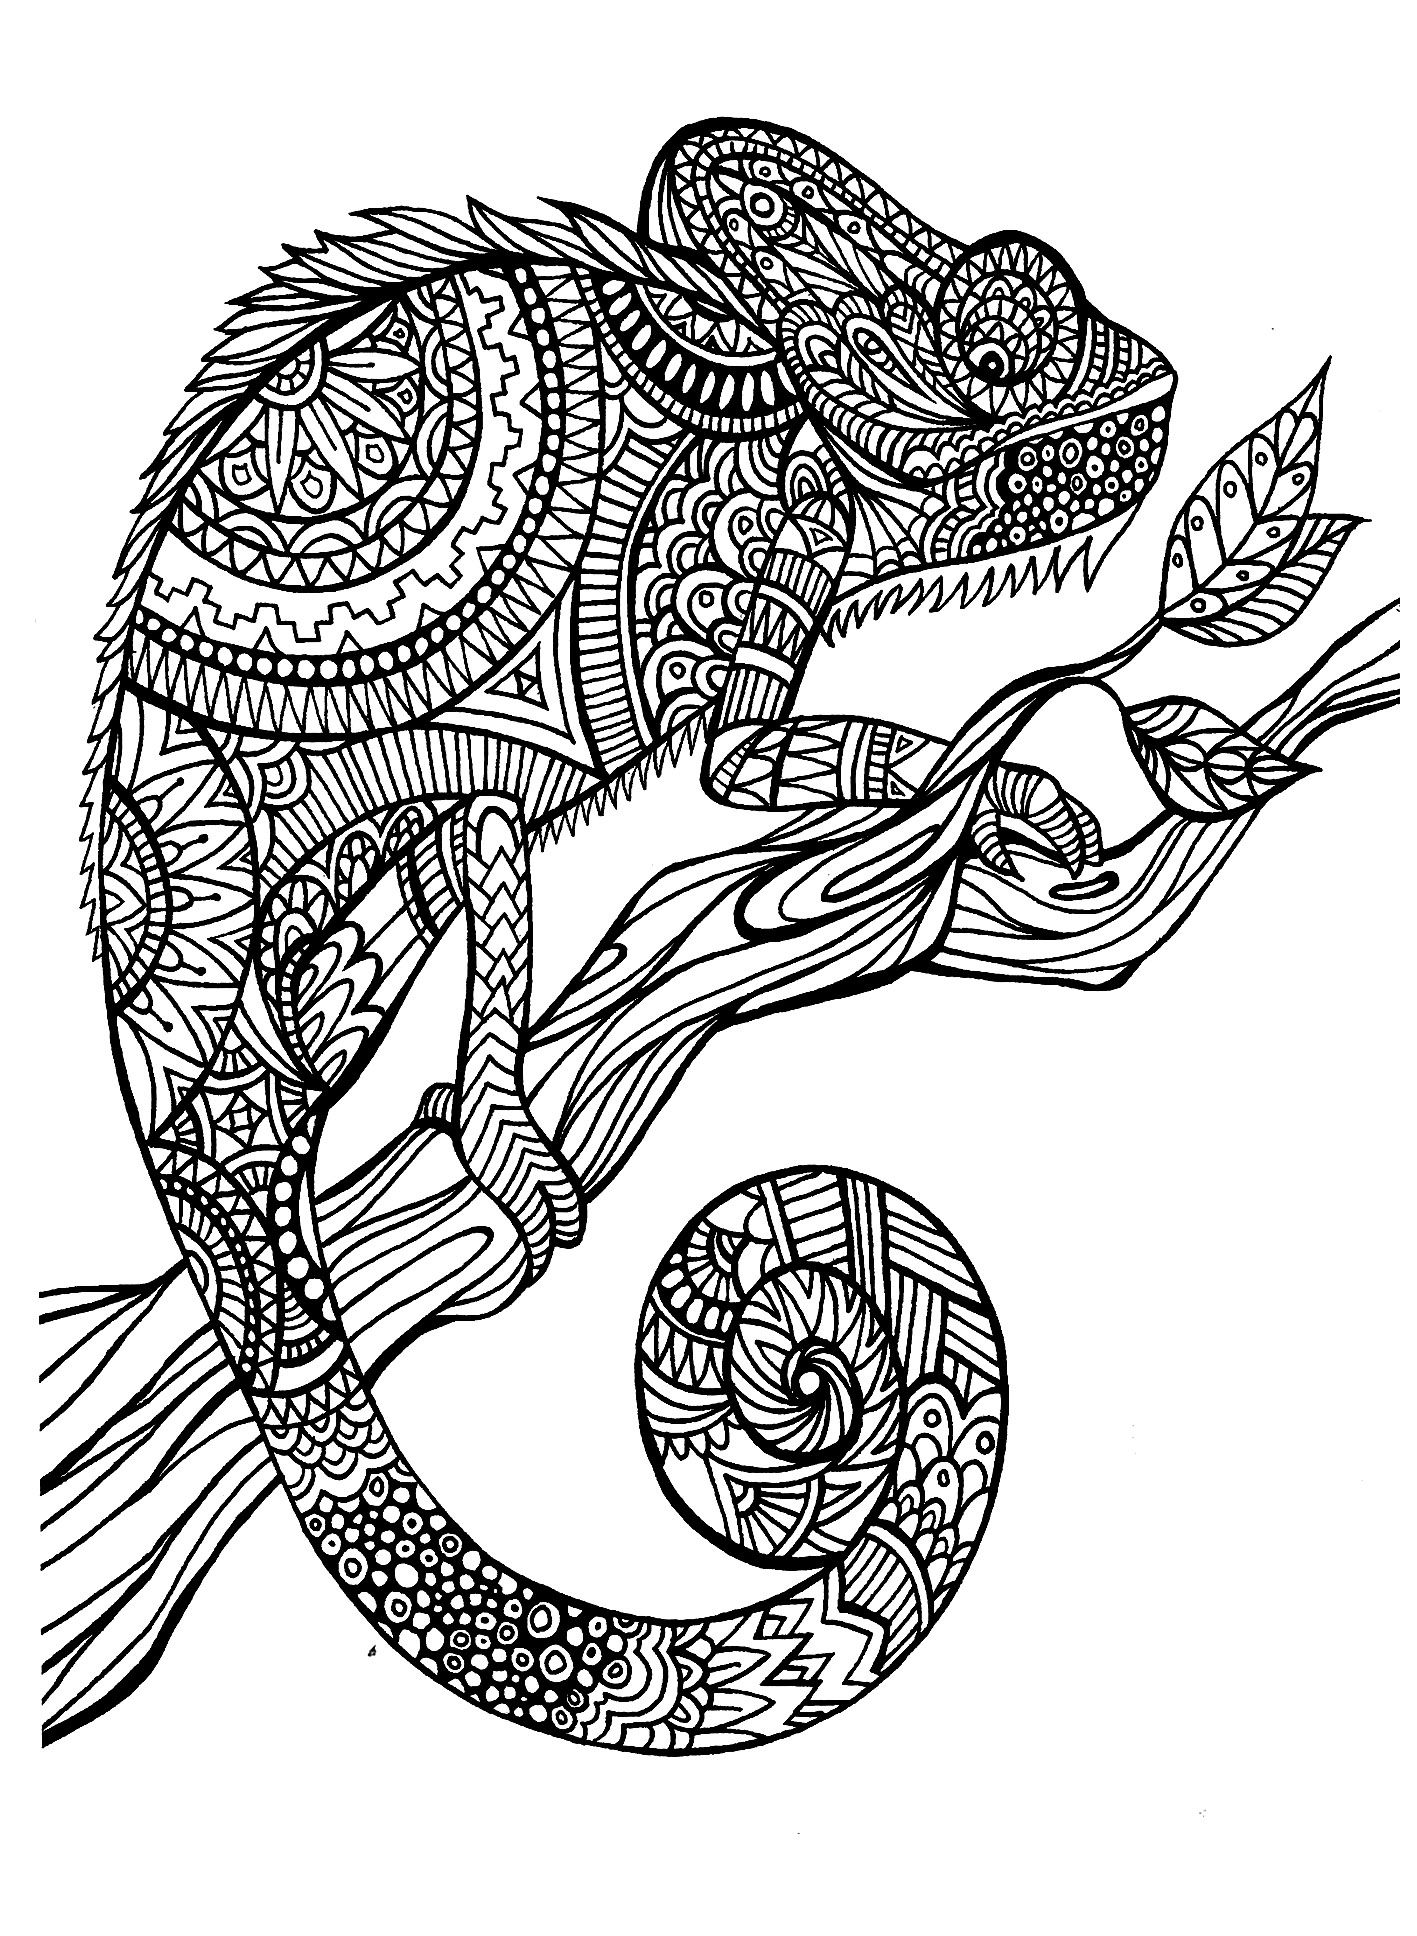 Coloring pages for restaurants - This Magnificent Cameleon Reminds Me Of A Patient At The Exotic Animal Clinic I Worked For I Love Him Even Without His Colors Adult Coloring Pages